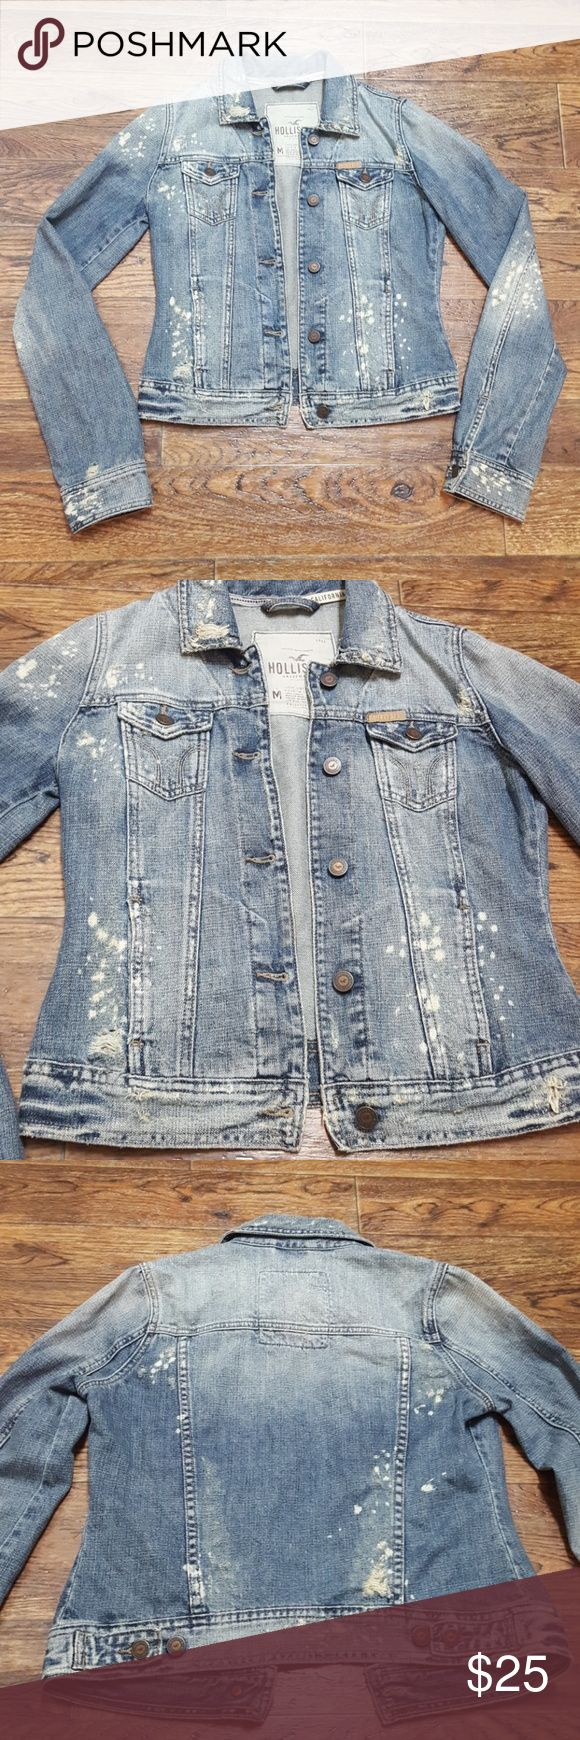 Hollister Destroyed Jean Jacket Jean jacket feom Hollister with factory bleach splatter and fraying. Hand washed only. Last 2 pics show light stains that could come out if machine washed but i haven't tried. Otherwise, in great preowned condition. Hollister Jackets & Coats Jean Jackets